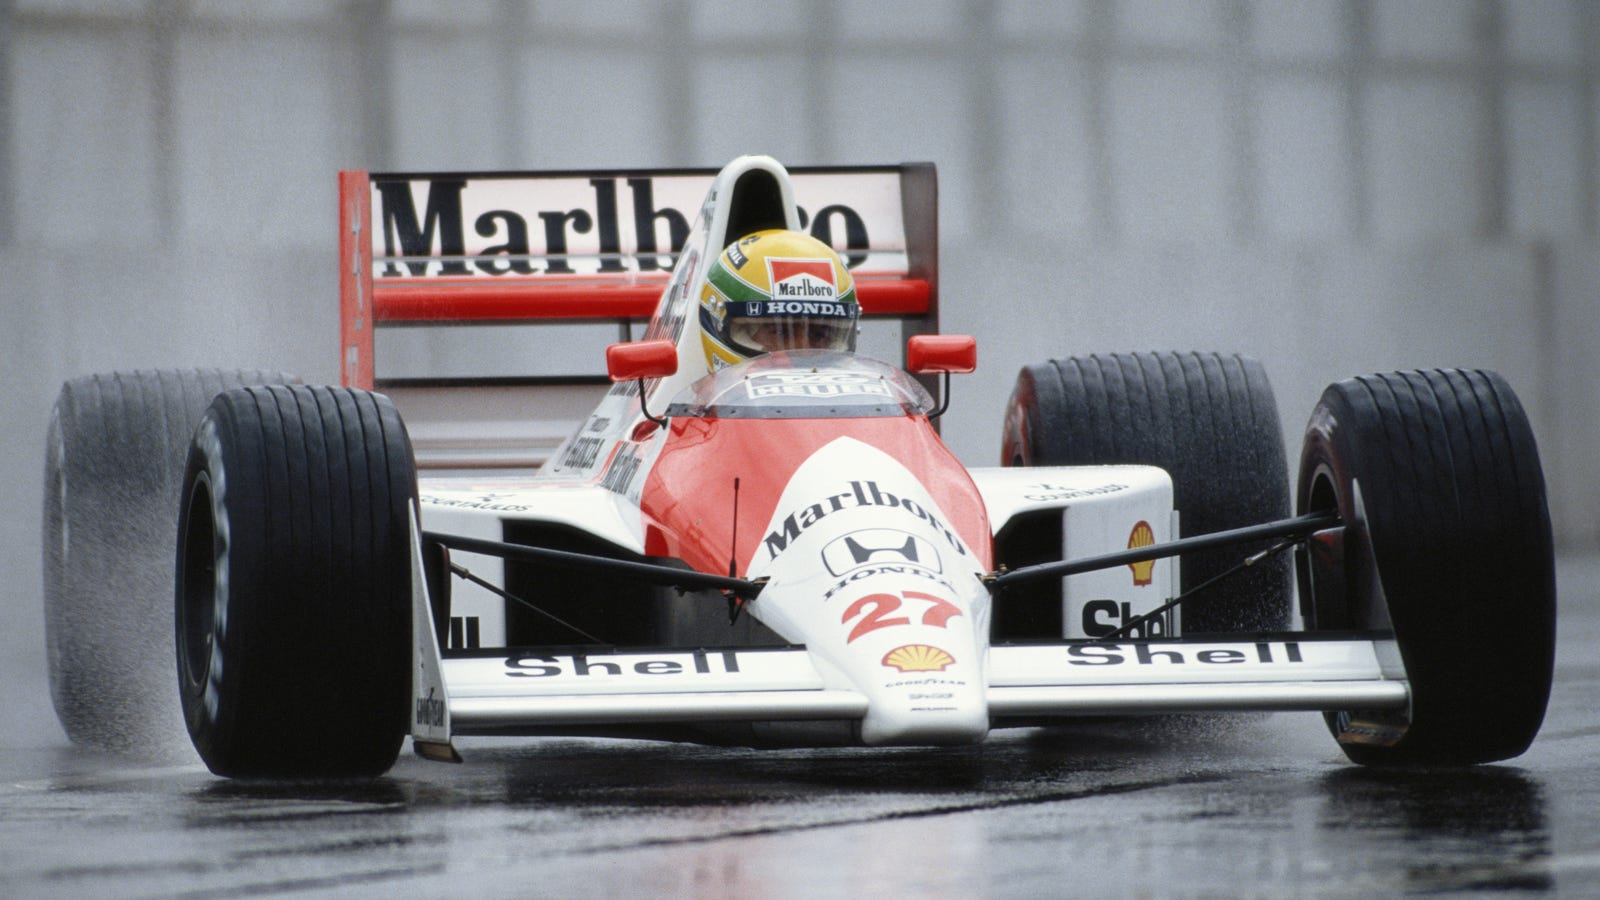 Ayrton Senna's Tradition Will Live on as Long as Solution One Keeps Making Every Effort for Safety thumbnail